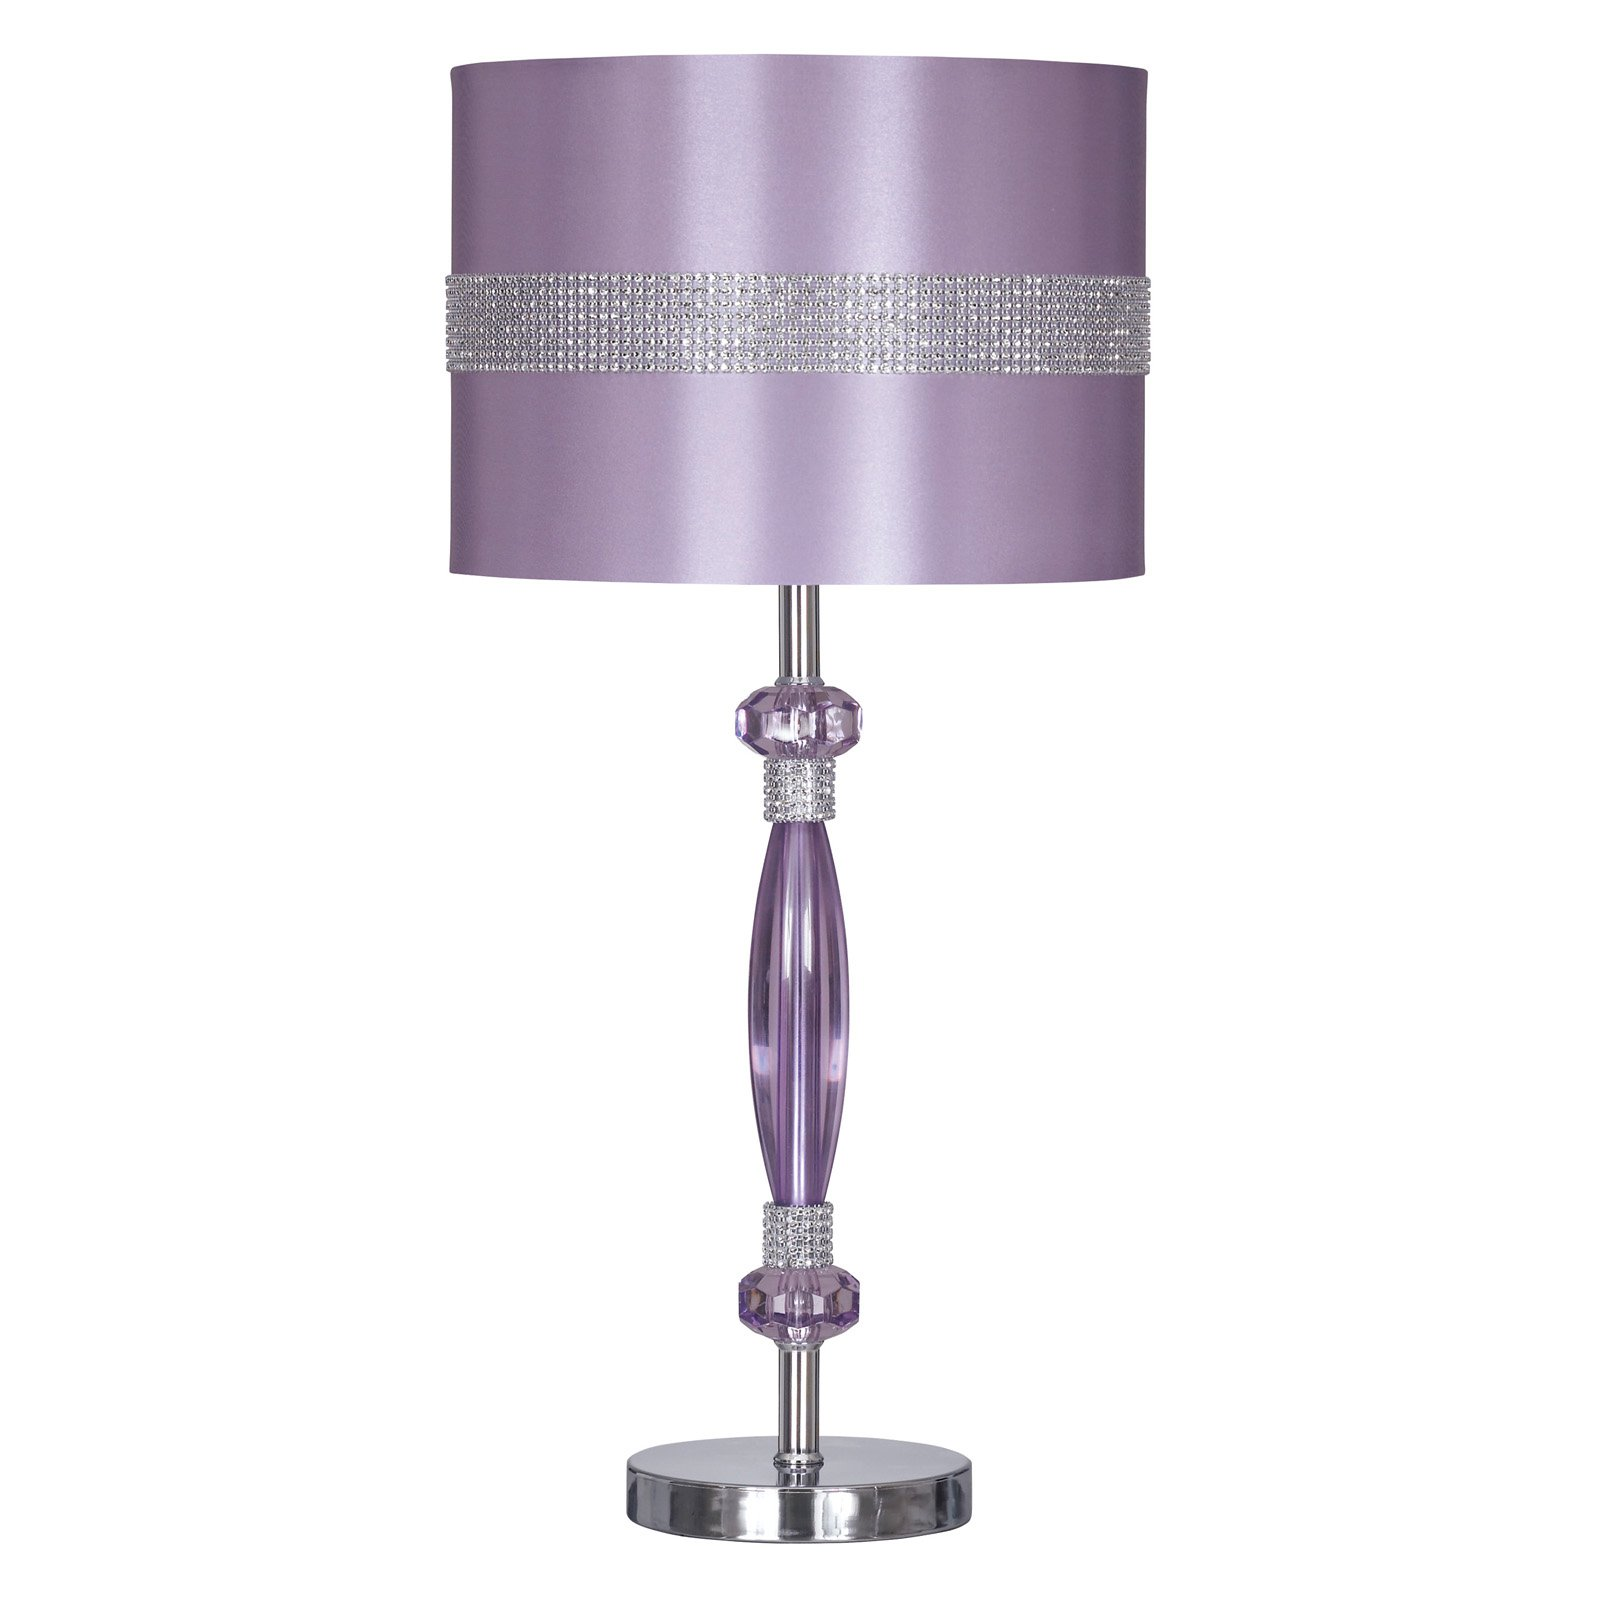 lamp murano villaverde joya metal table london collection lamps